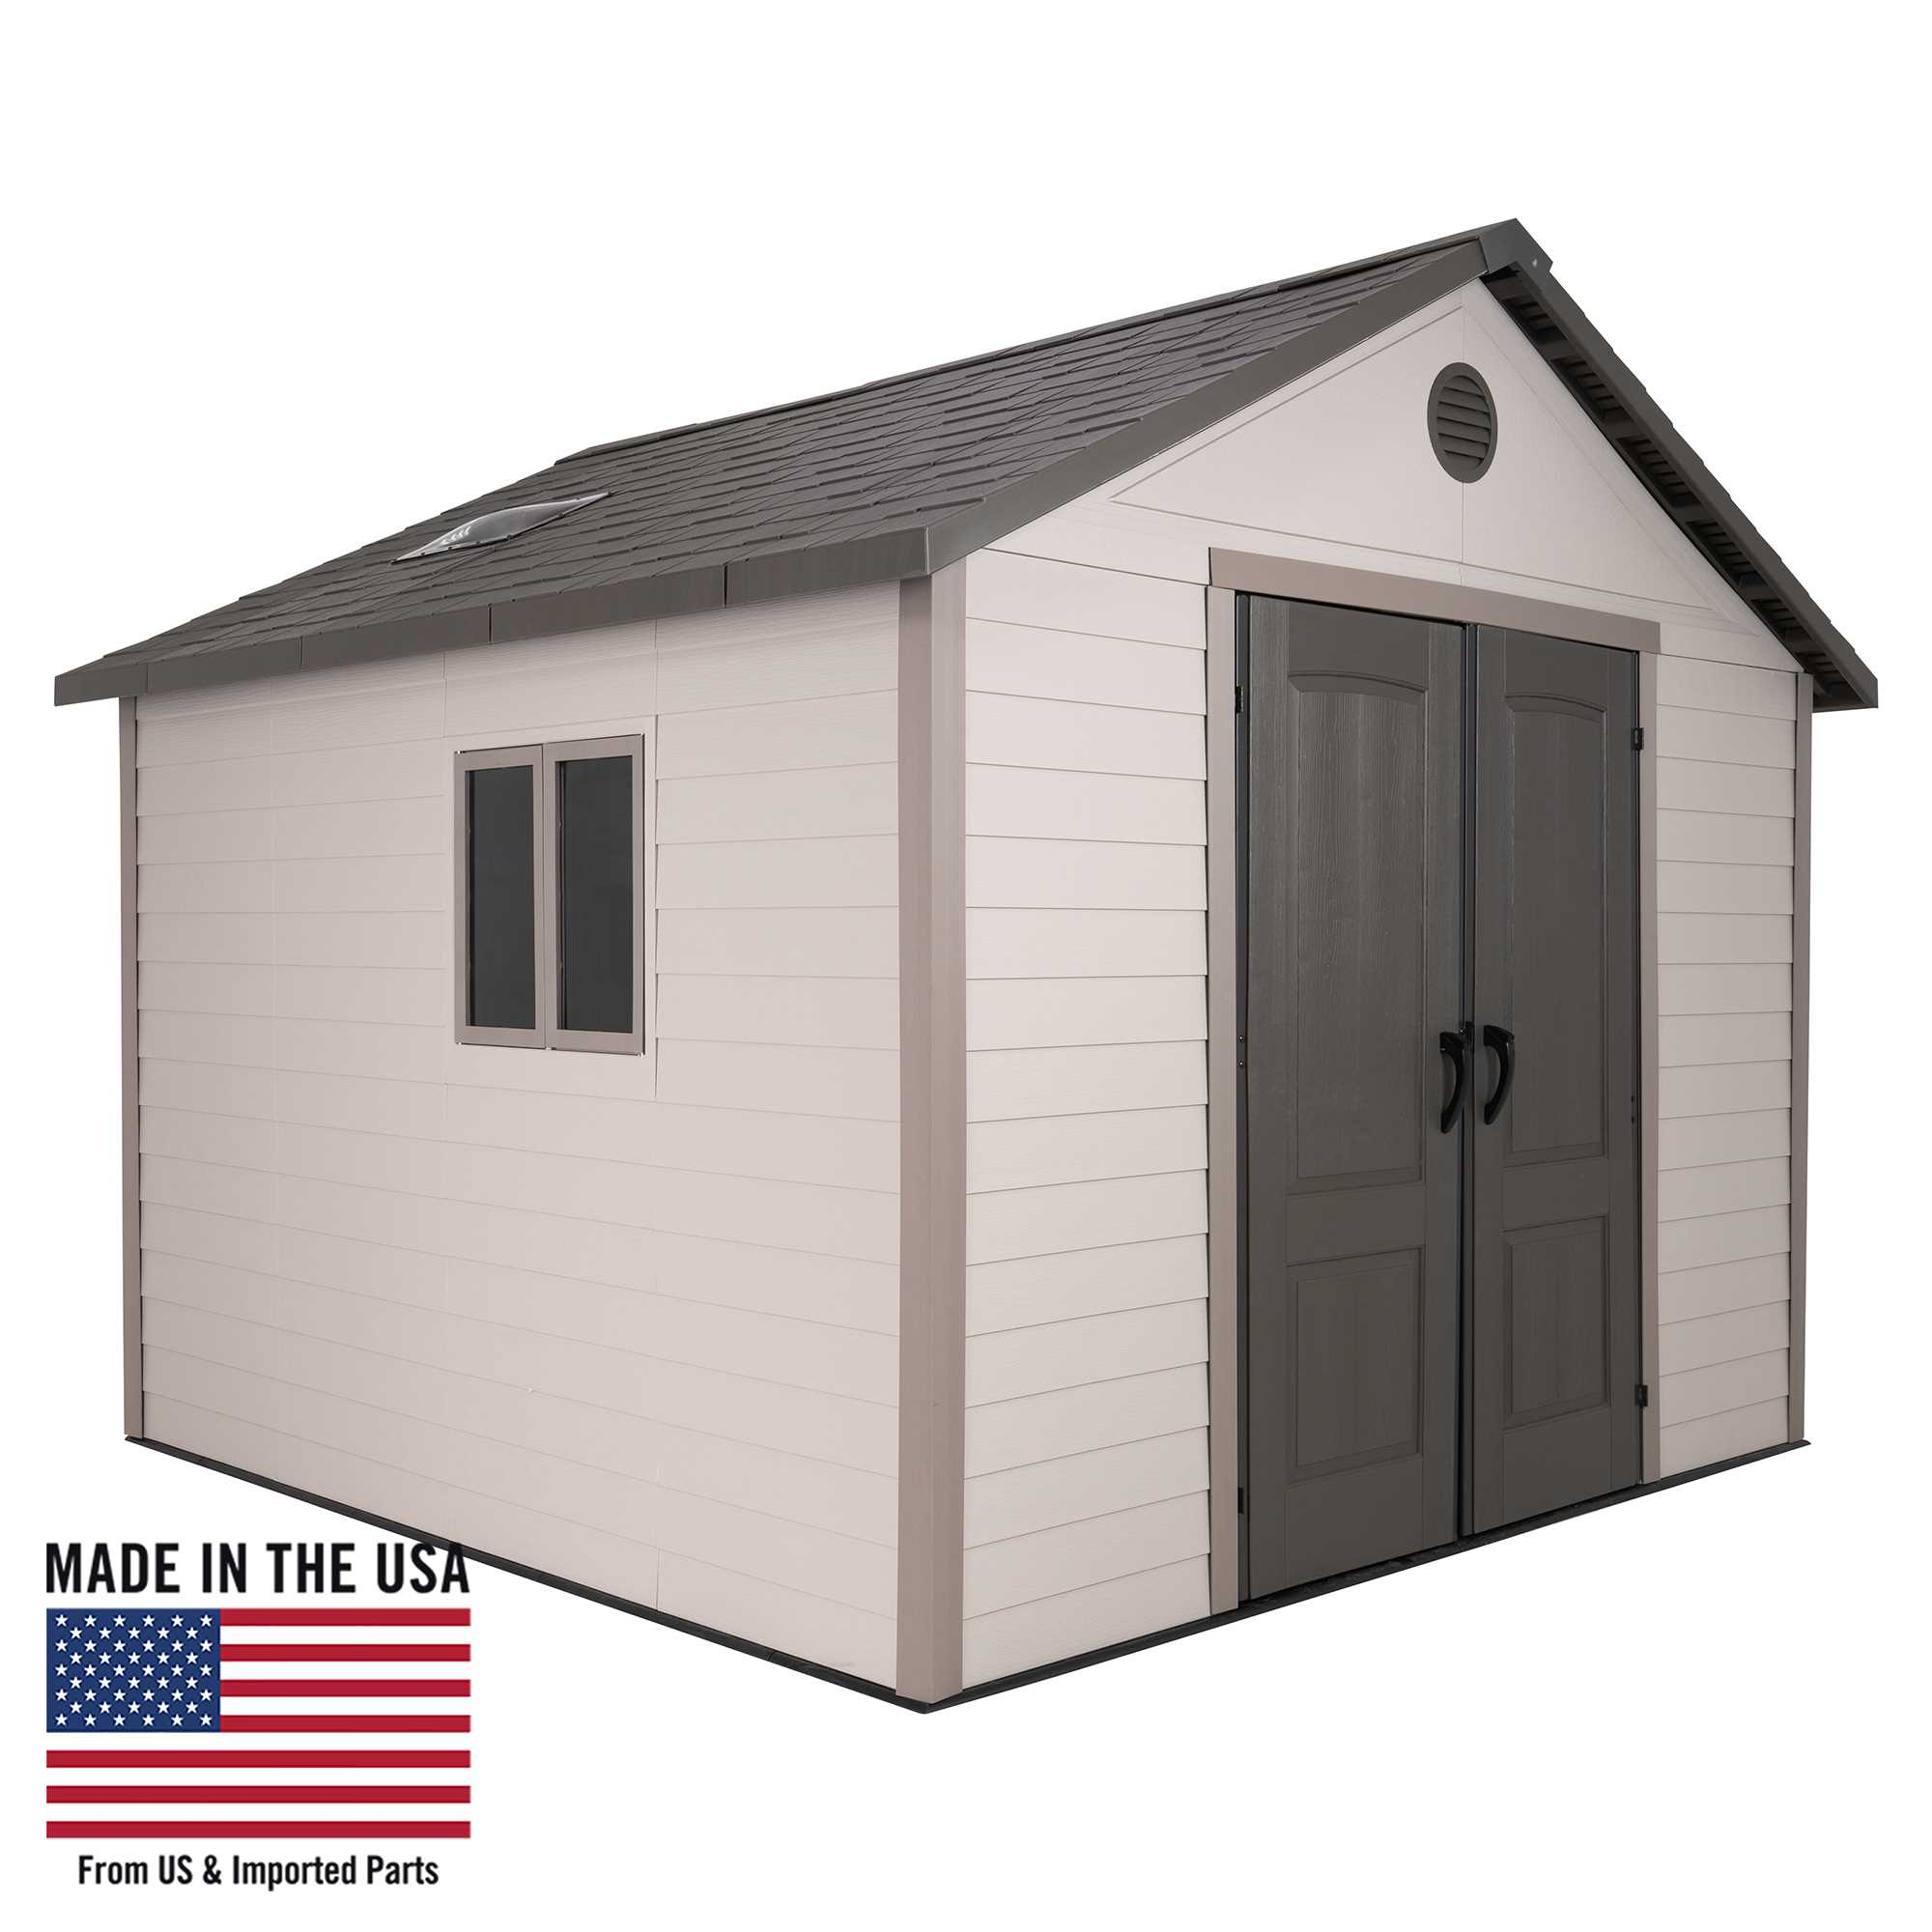 Lifetime 11 Ft. x 11 Ft. Outdoor Storage Shed